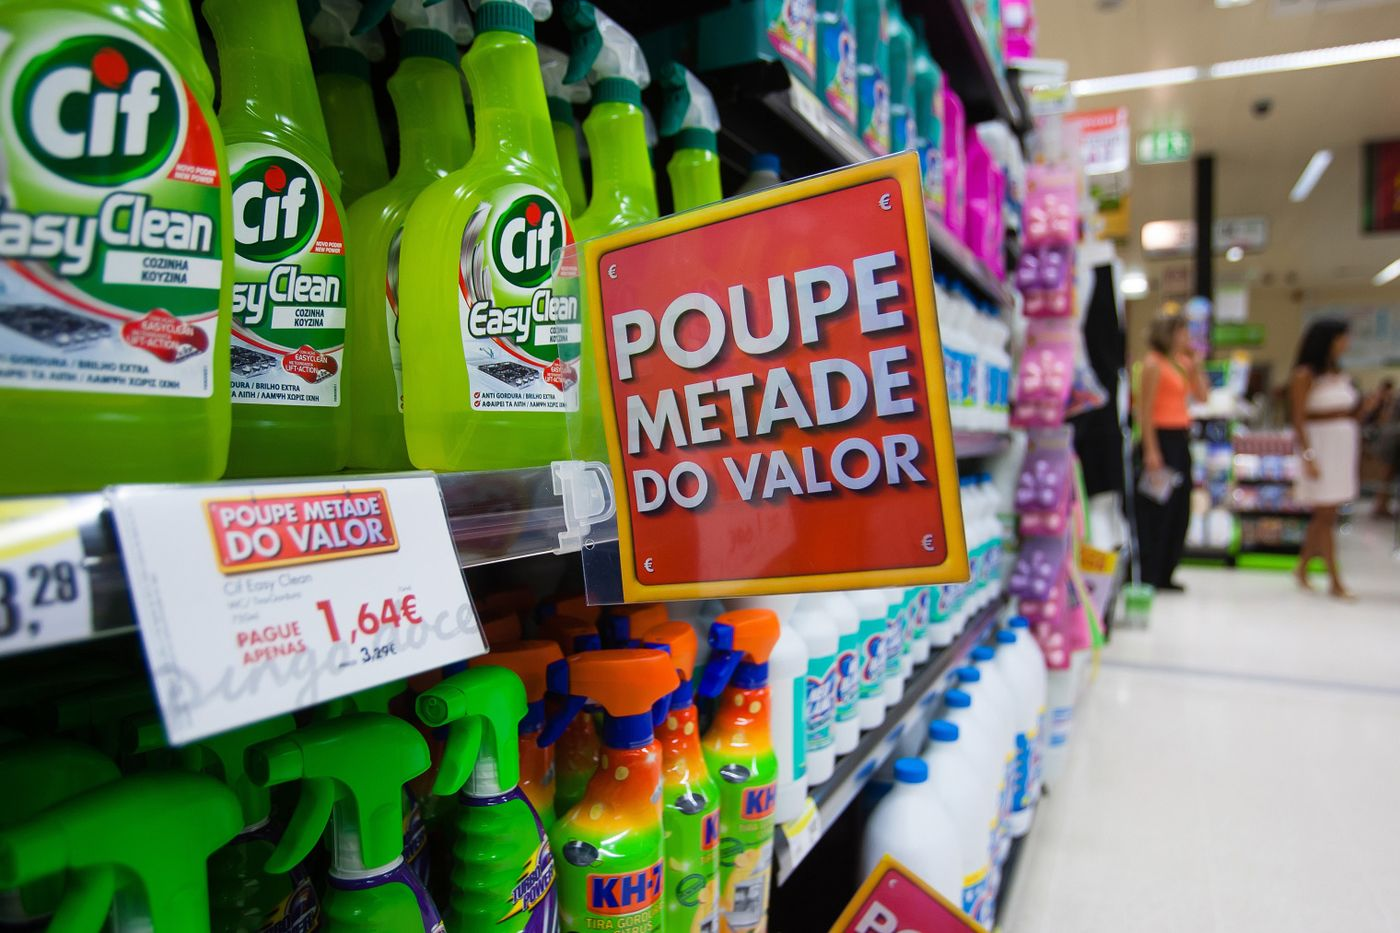 Cif cleaning products sit for sale inside a supermarket in Lisbon. Photographer: Mario Proenca/Bloomberg